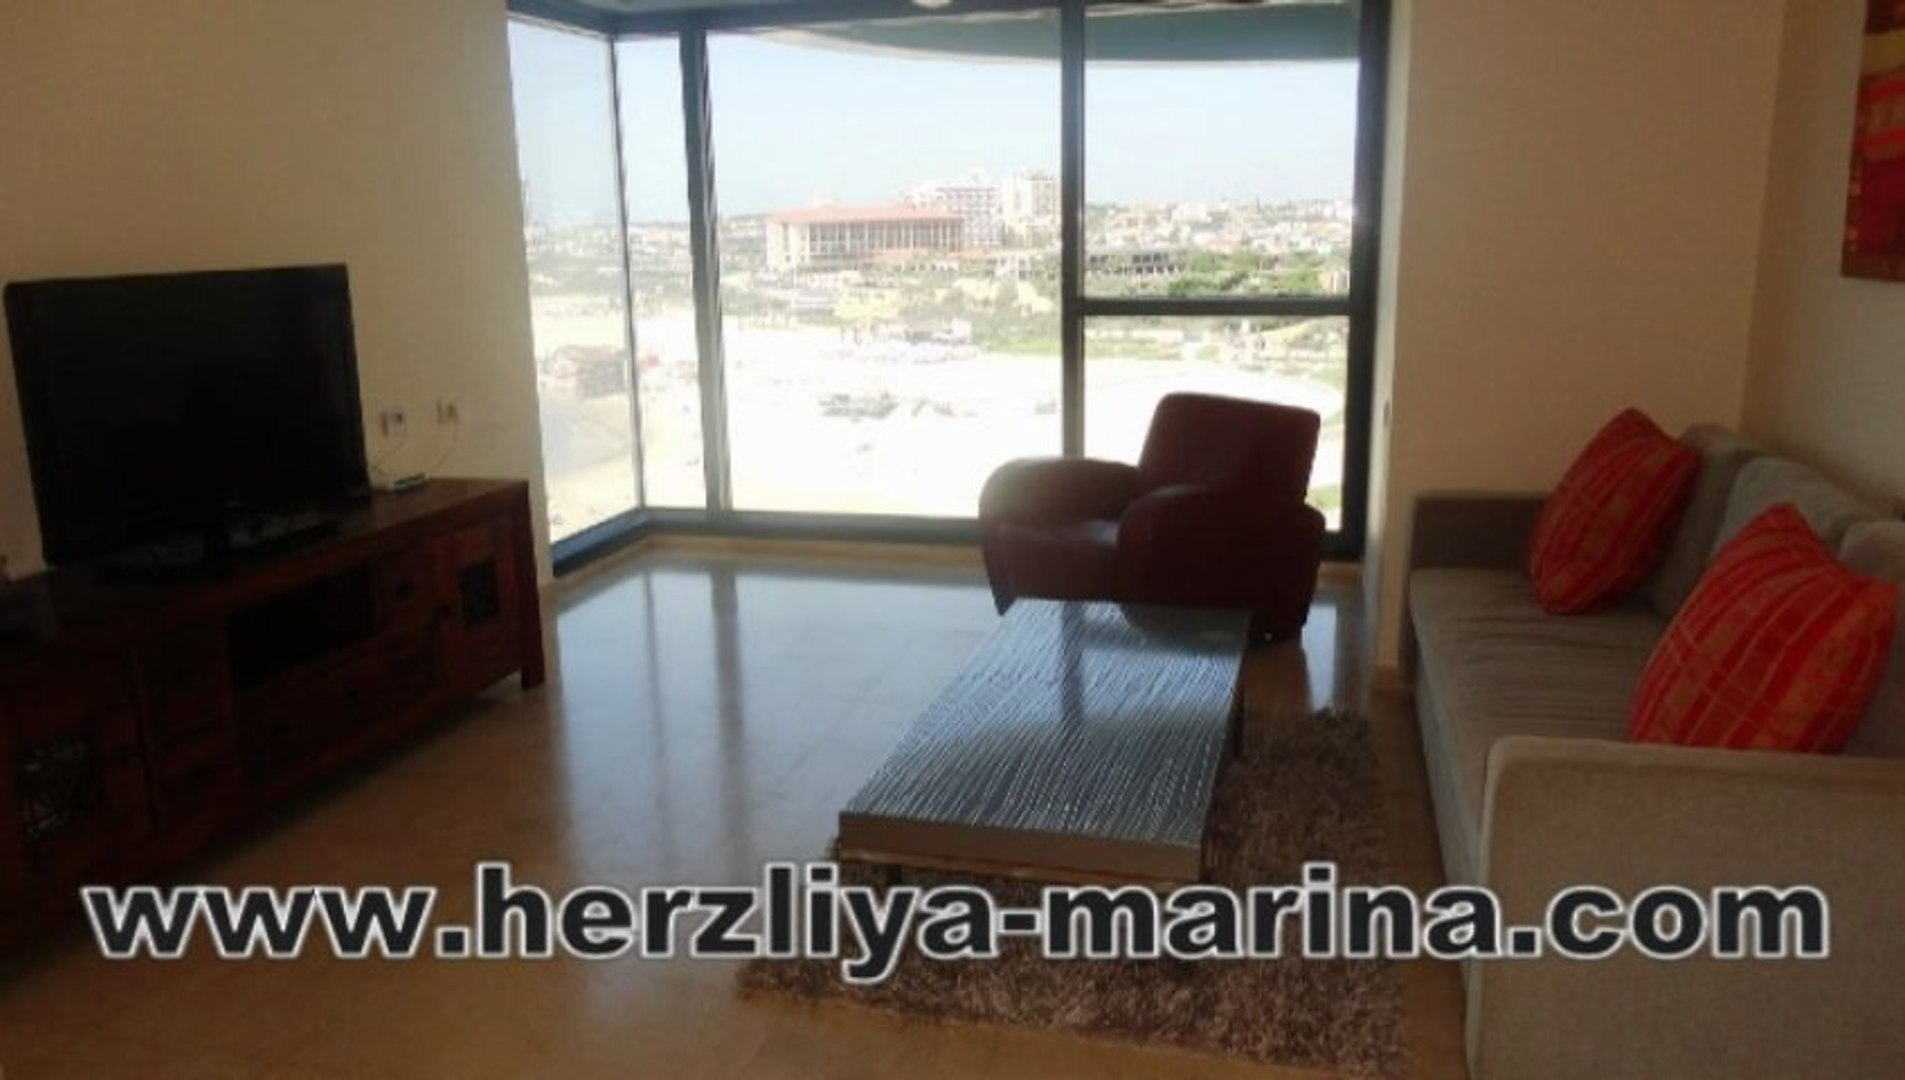 Where to stay in israel ?  Israel Accommodation, Israel Hotel apartments 972-544421444